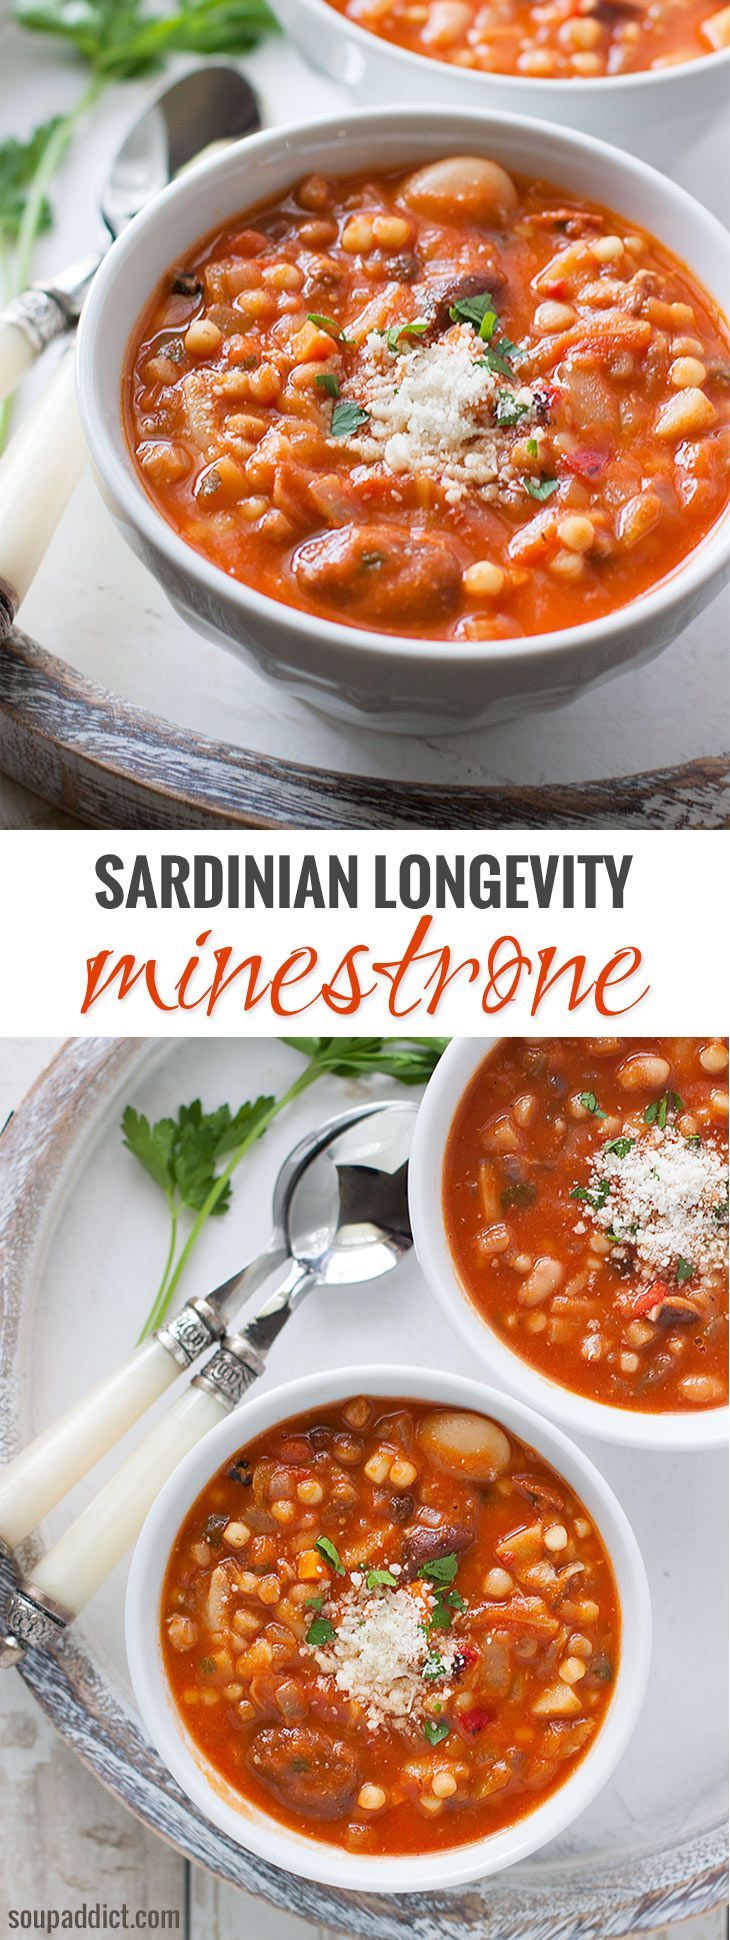 Sardinian Longevity Minestrone Soup from SoupAddict.com - a deliciously light legume and vegetable soup enjoyed by the long-lived residents of the island of Sardinia.